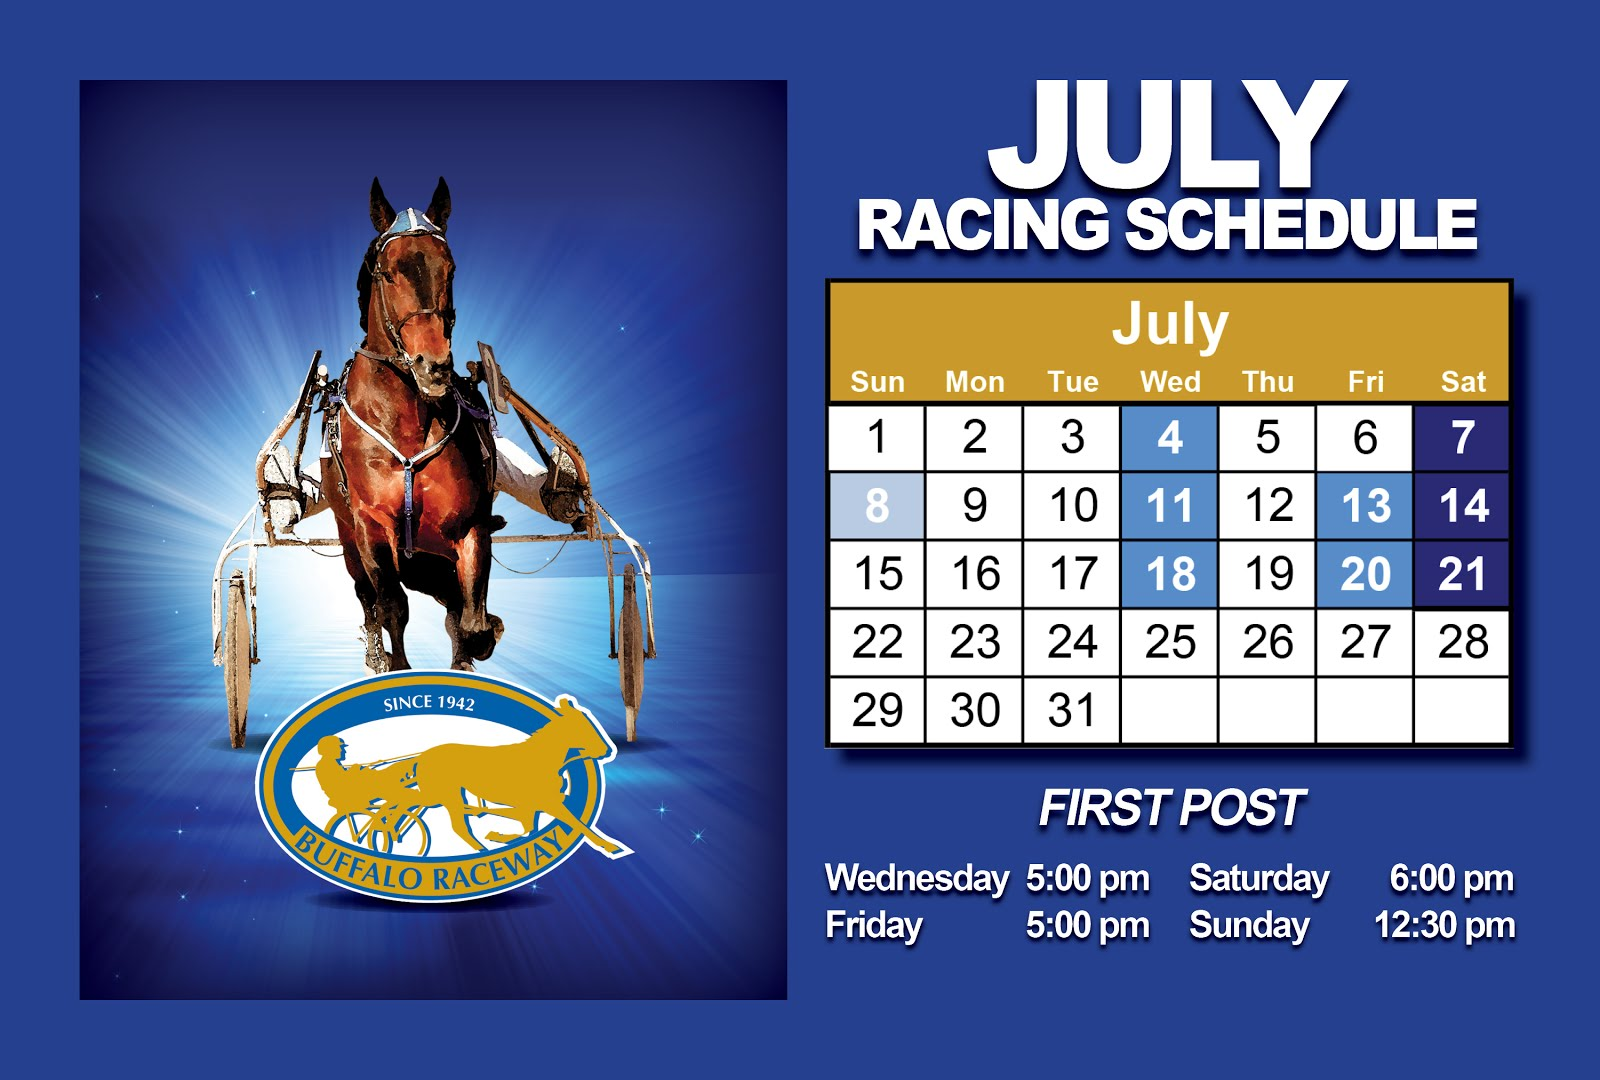 July's Live Racing Schedule